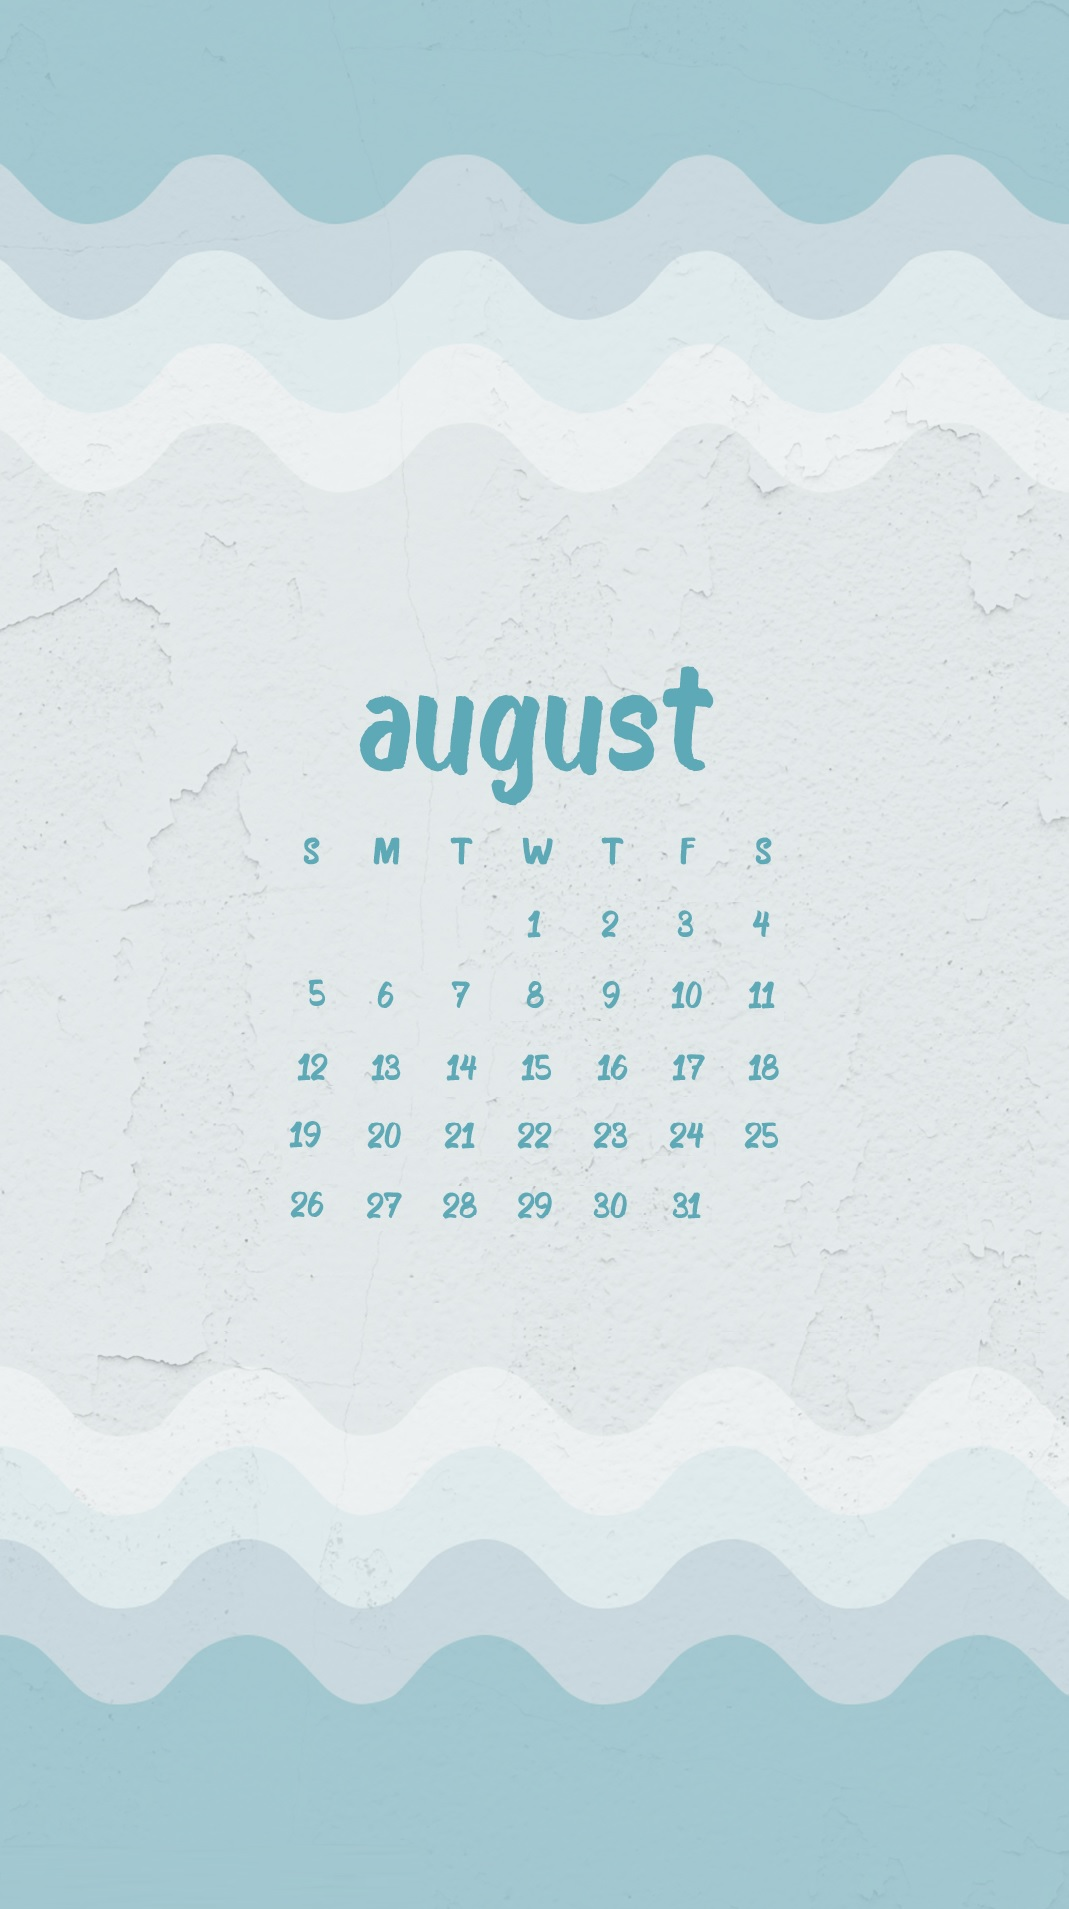 Best August 2018 iPhone Calendar Wallpapers